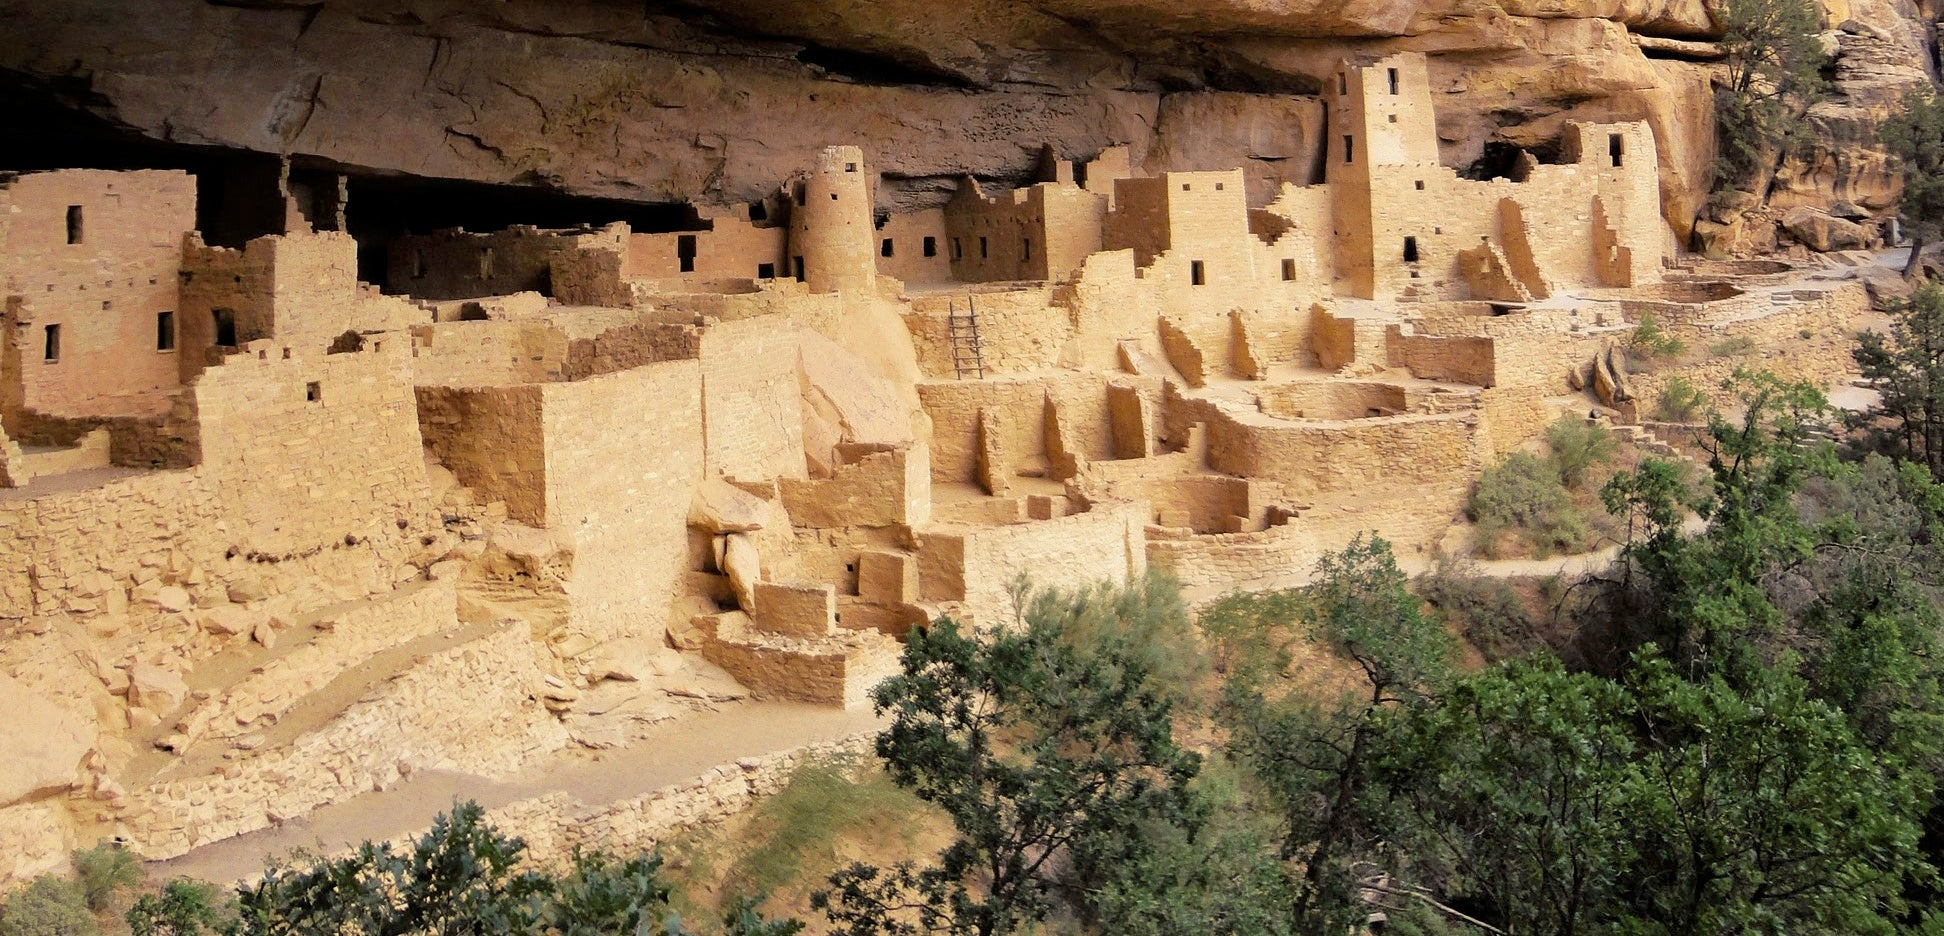 Cliff dwellings with trees